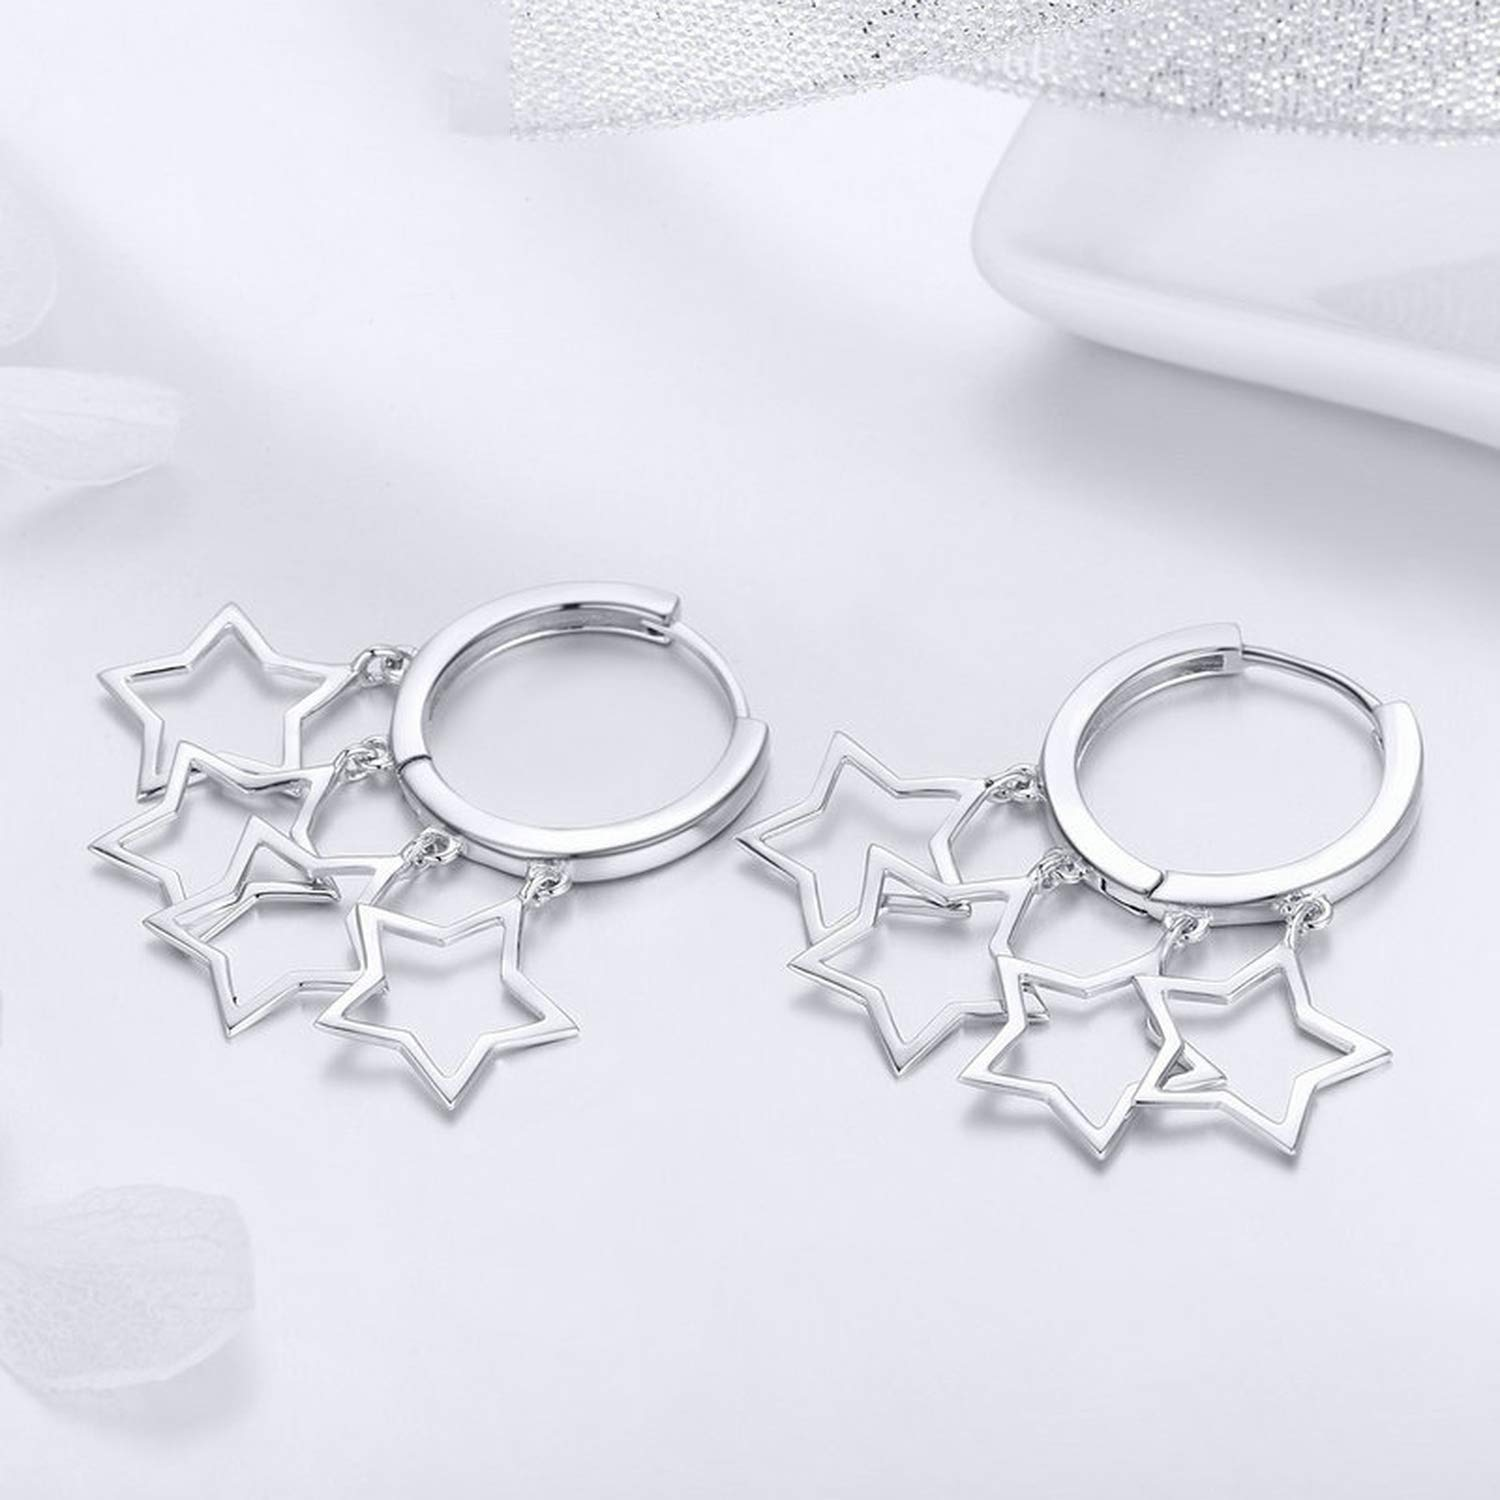 925 Sterling Silver Round Circle Shimmering Star Exquisite Stud Earrings for Women Earrings Jewelry